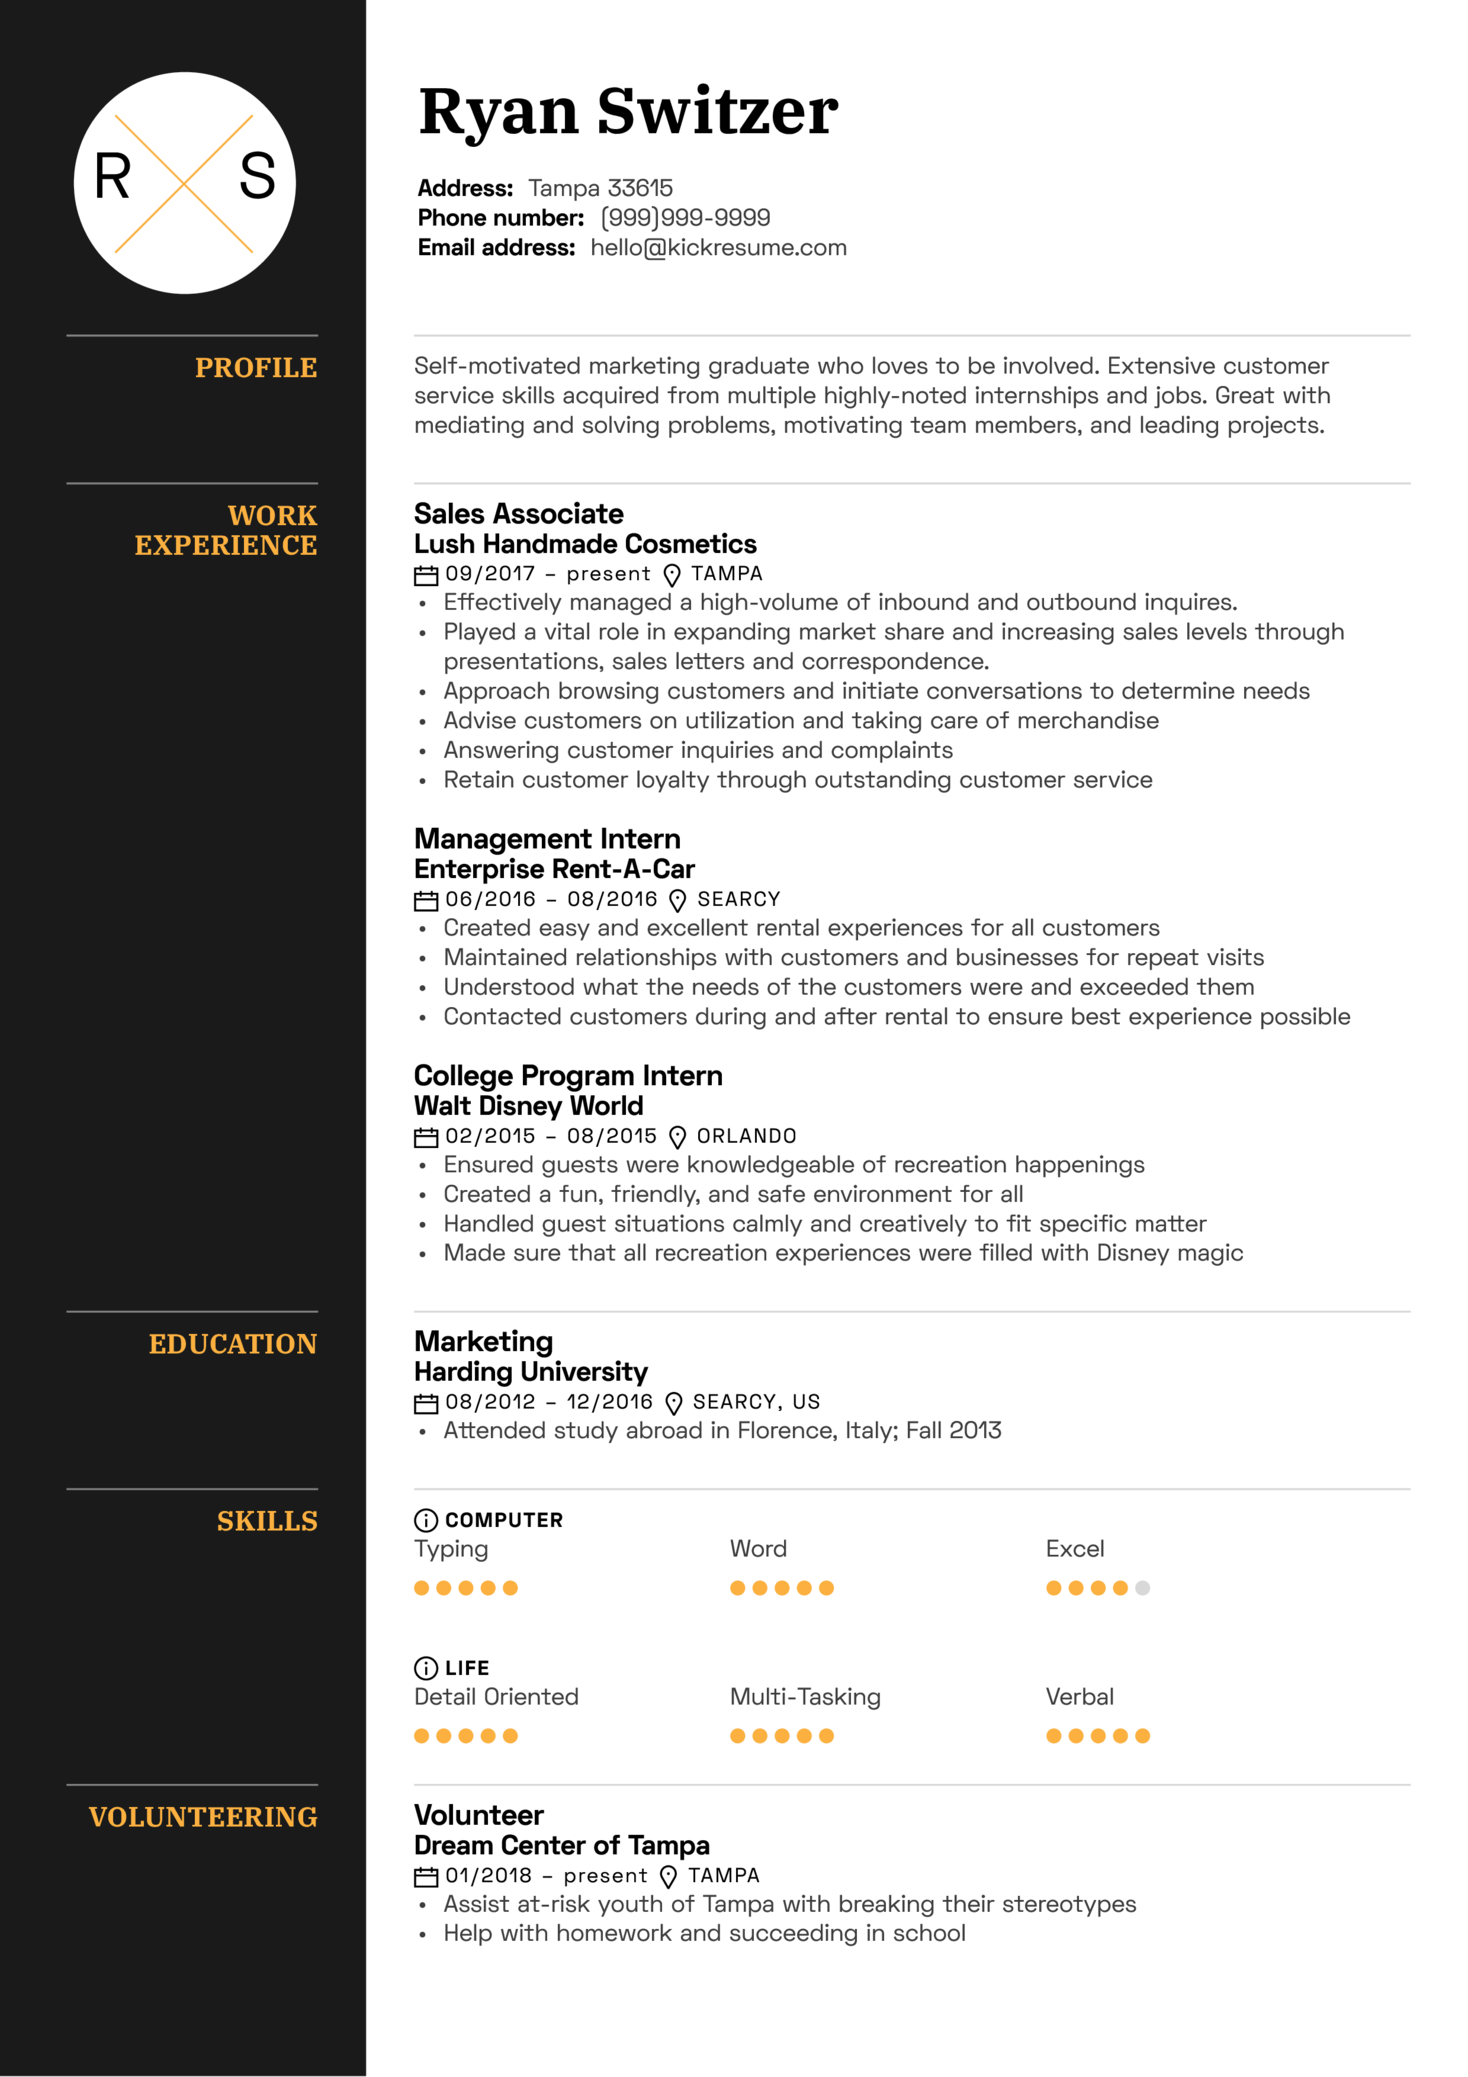 Resume Examples by Real People Sales associate resume template  Kickresume